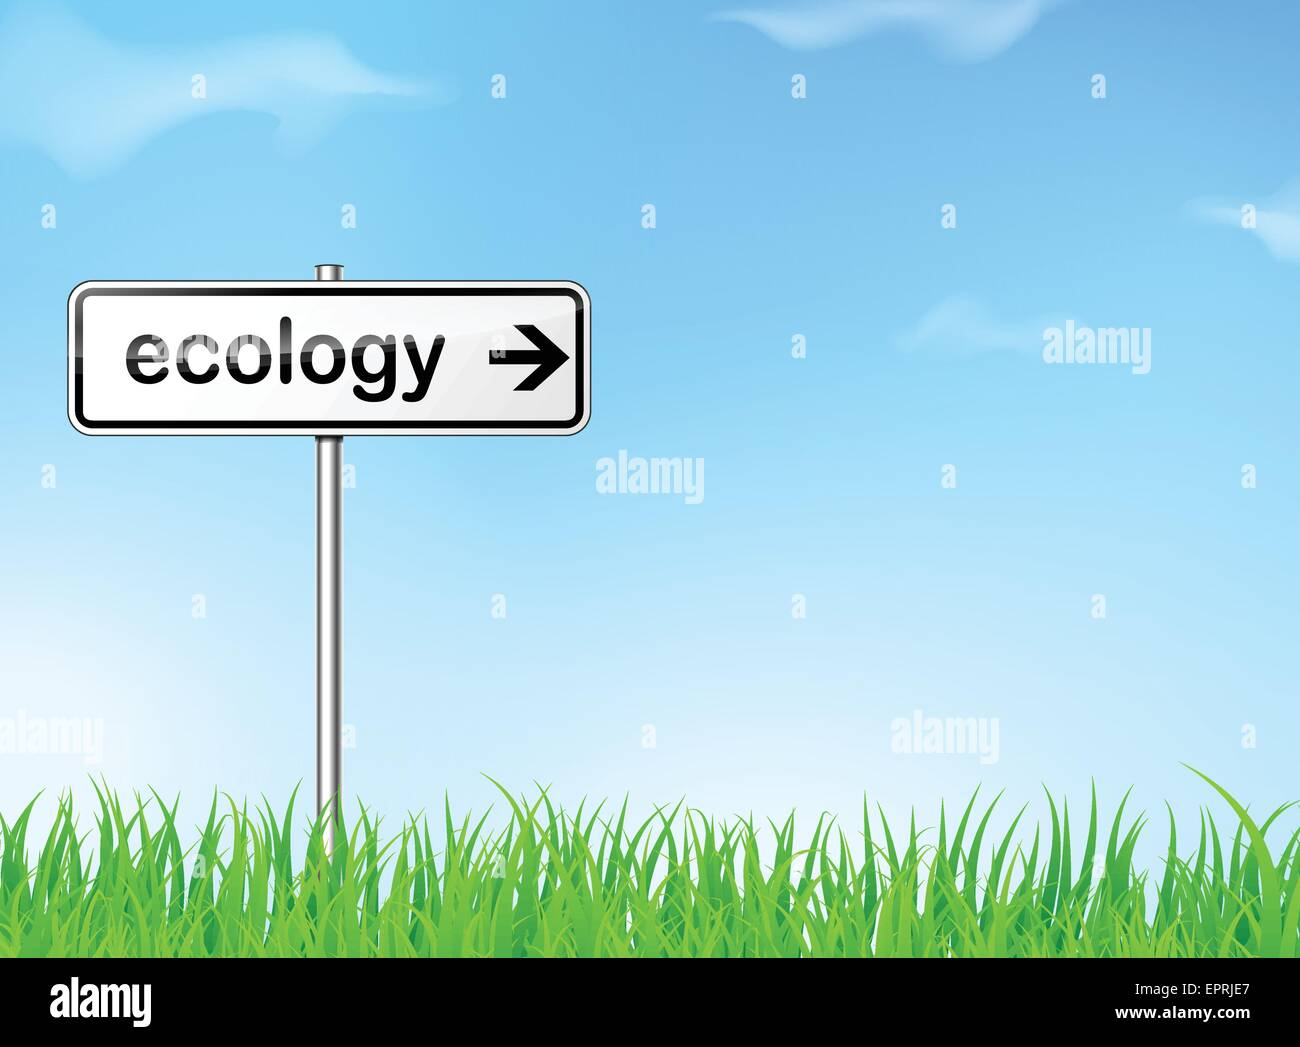 Illustration de l'écologie résumé direction road sign Photo Stock